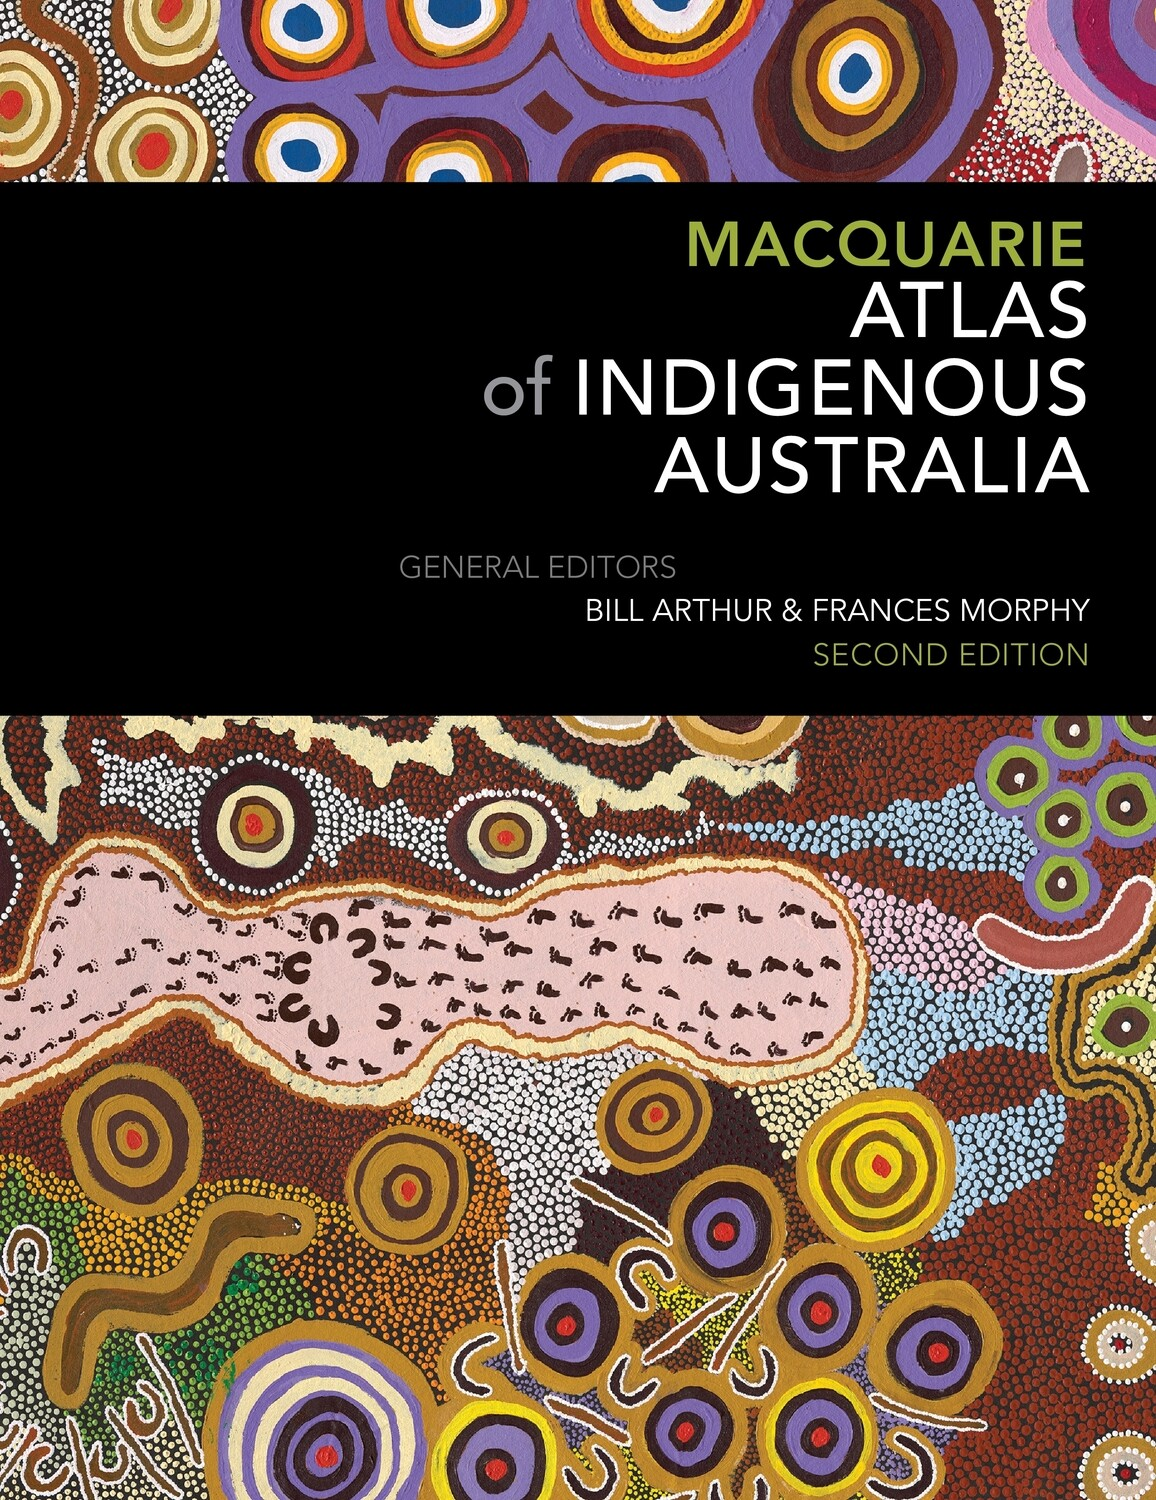 Macquarie Atlas of Indigenous Australia - 2nd Edition.  Edited by Bill Arthur and Frances Morphy